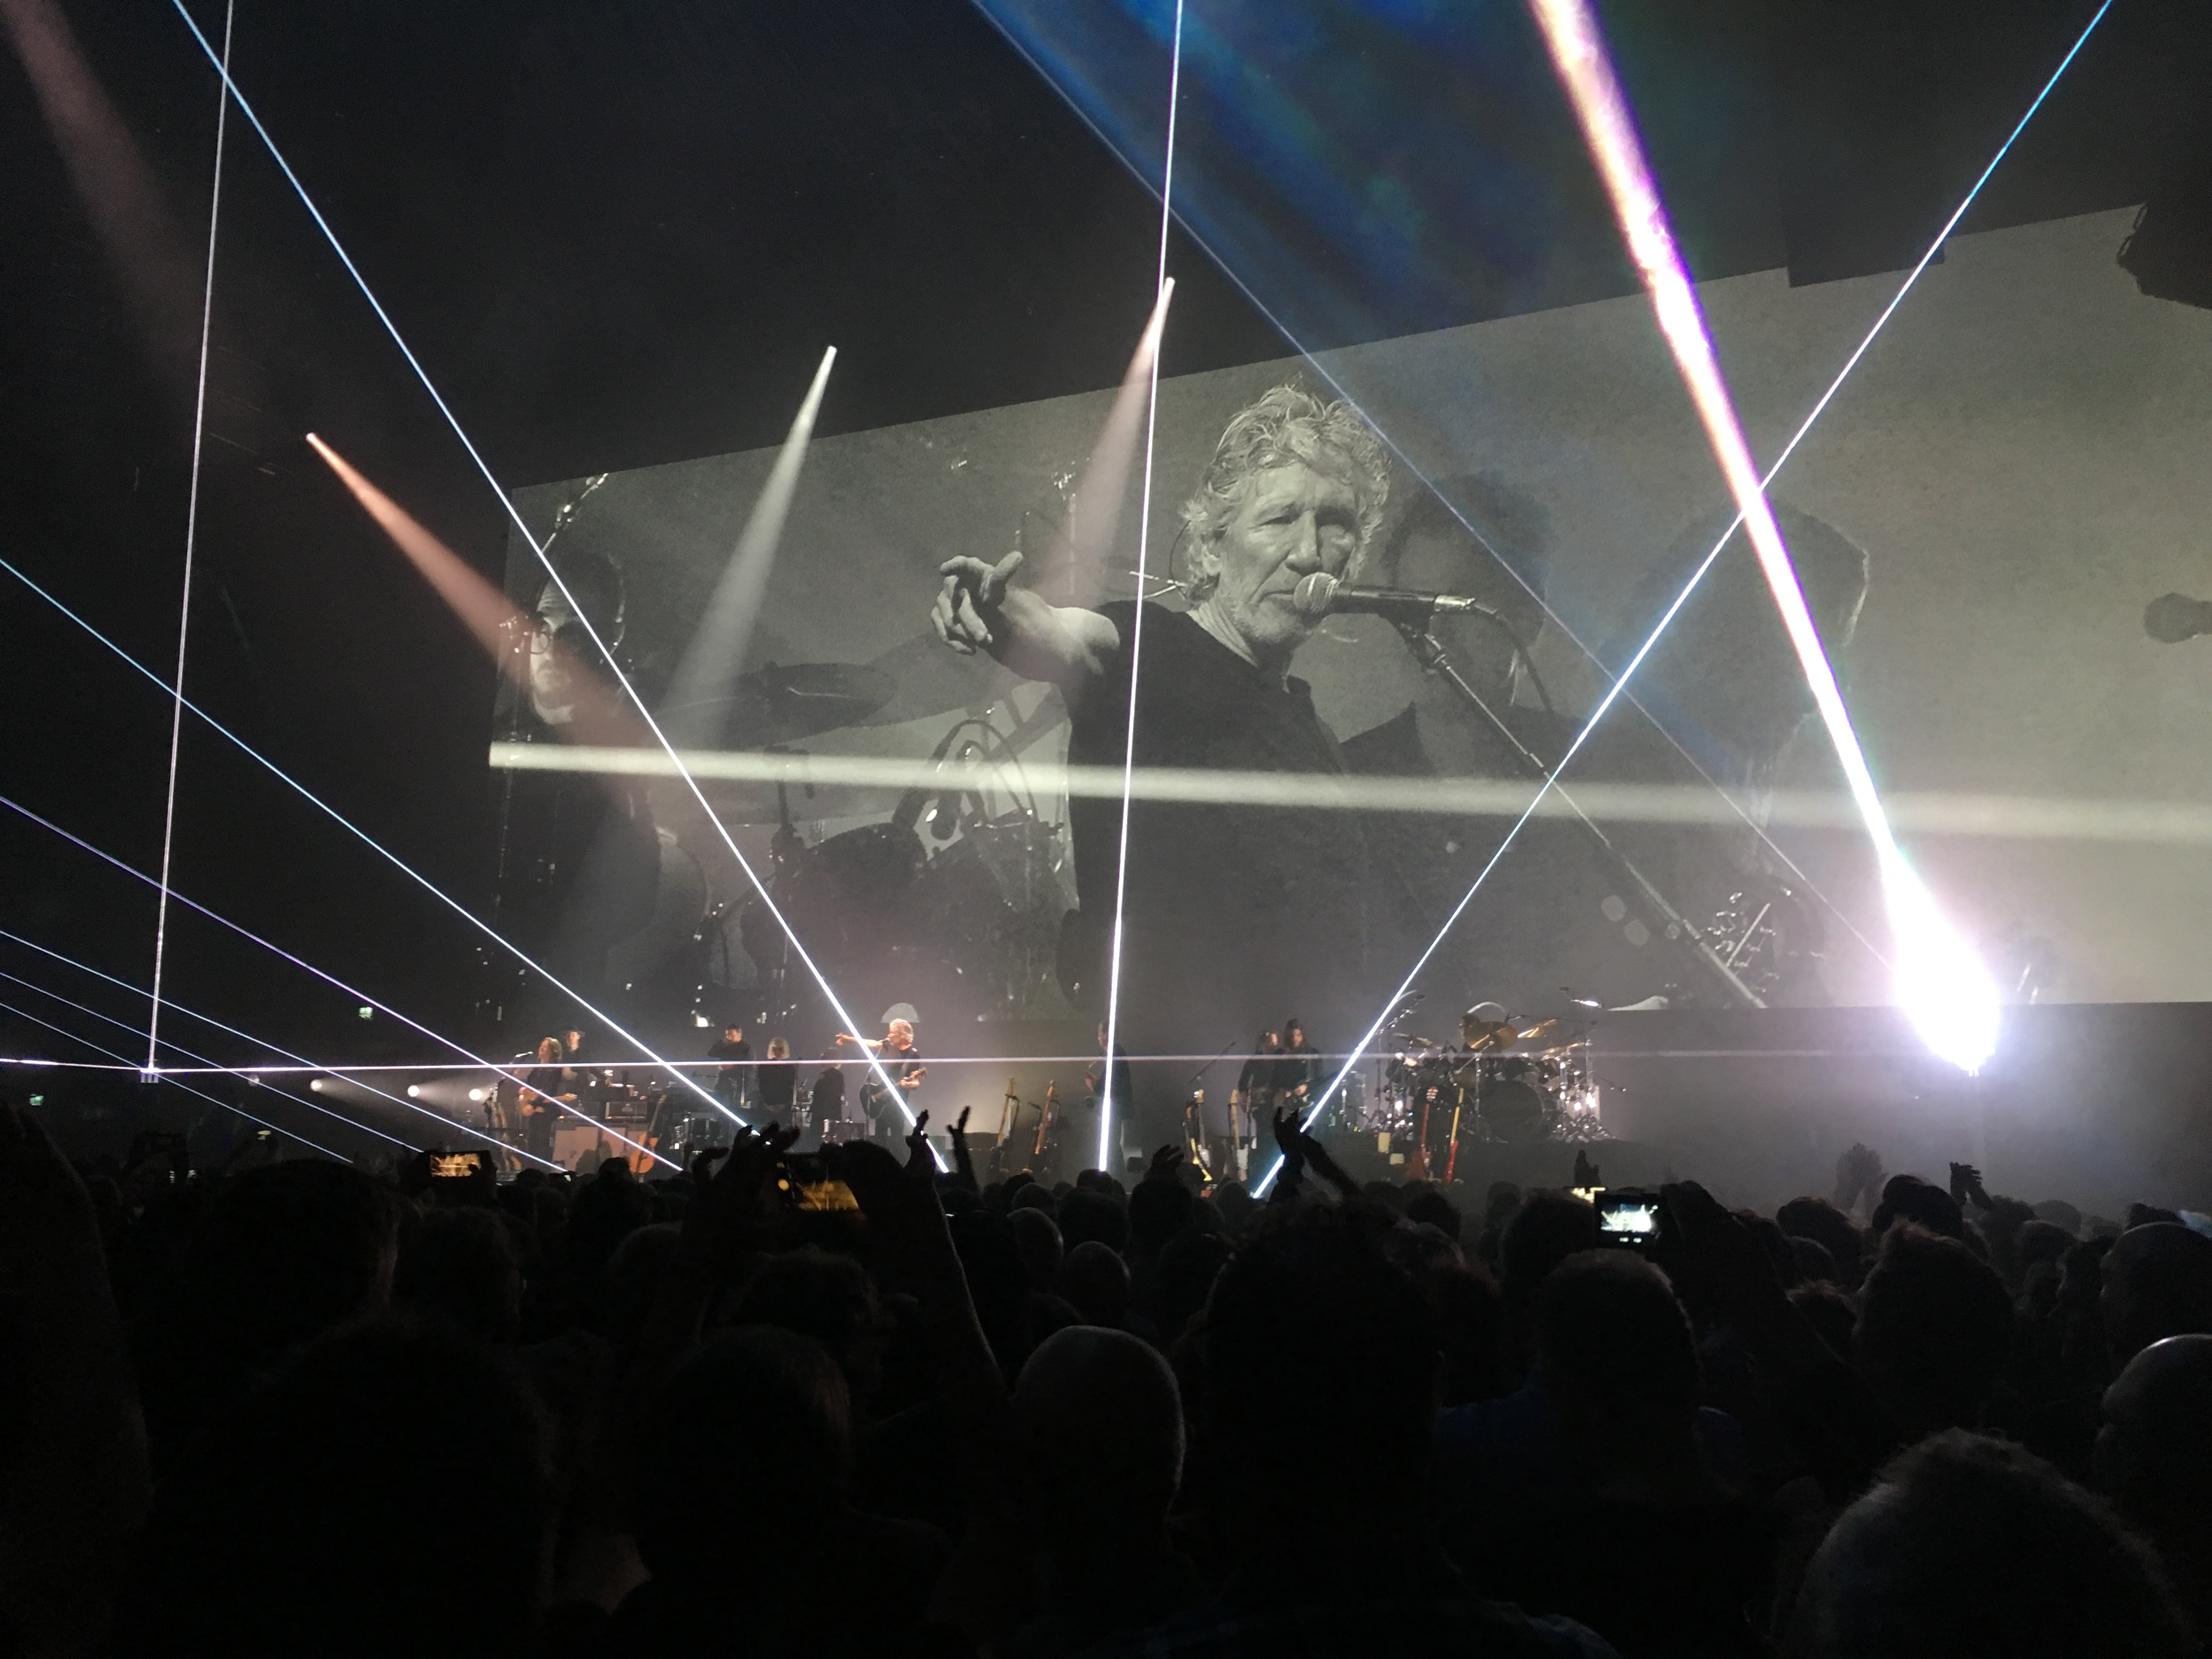 Concertreview: Hey you, Whitehouse Ha ha charade you are – Roger Waters